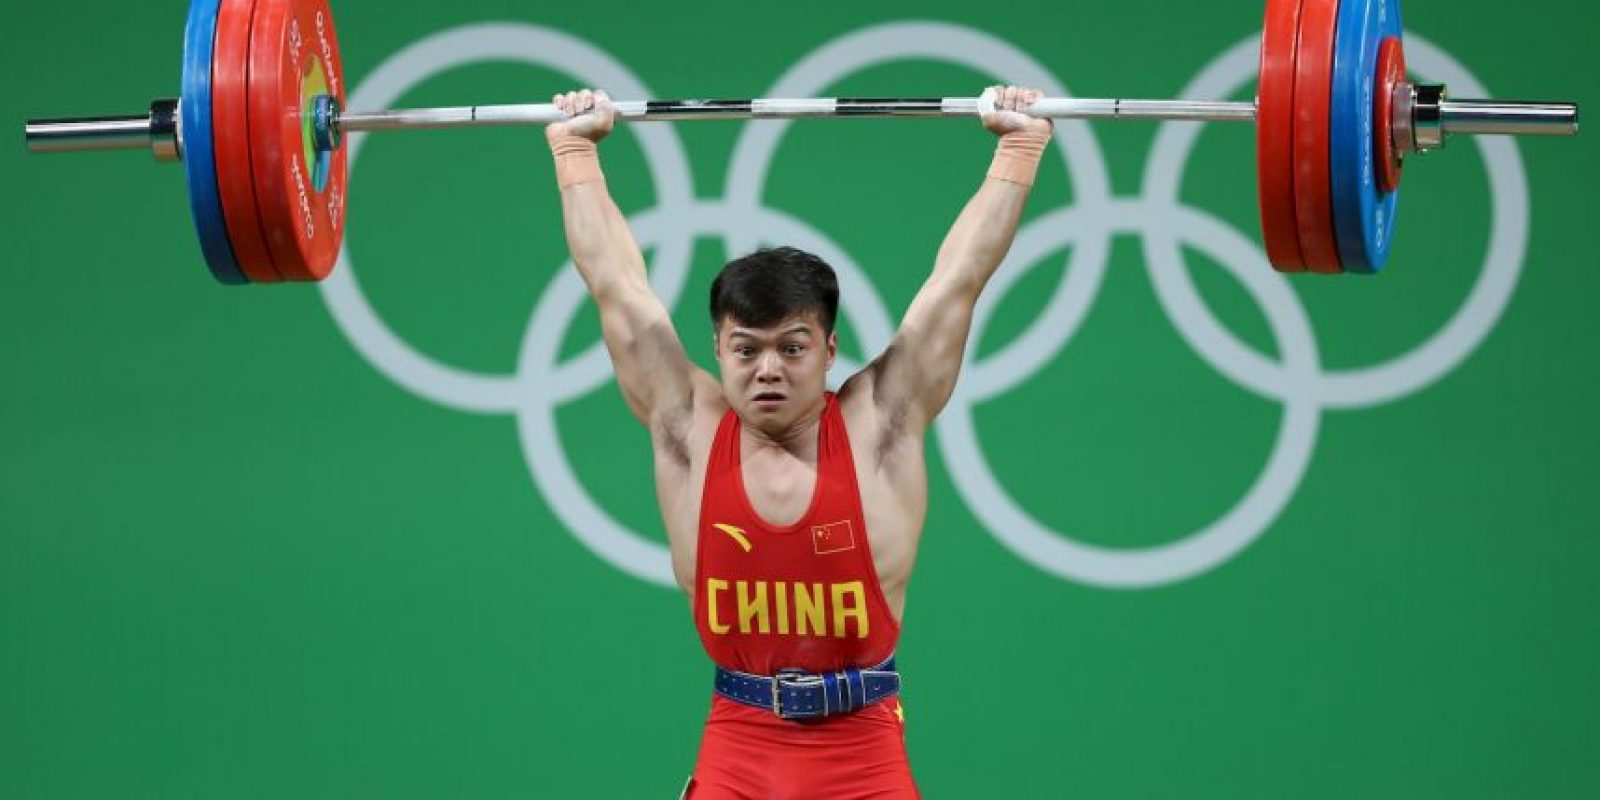 Qingquan Long. Cargo 307 kilos en levantamiento de pesas menor a 56 kilos Foto: Getty Images